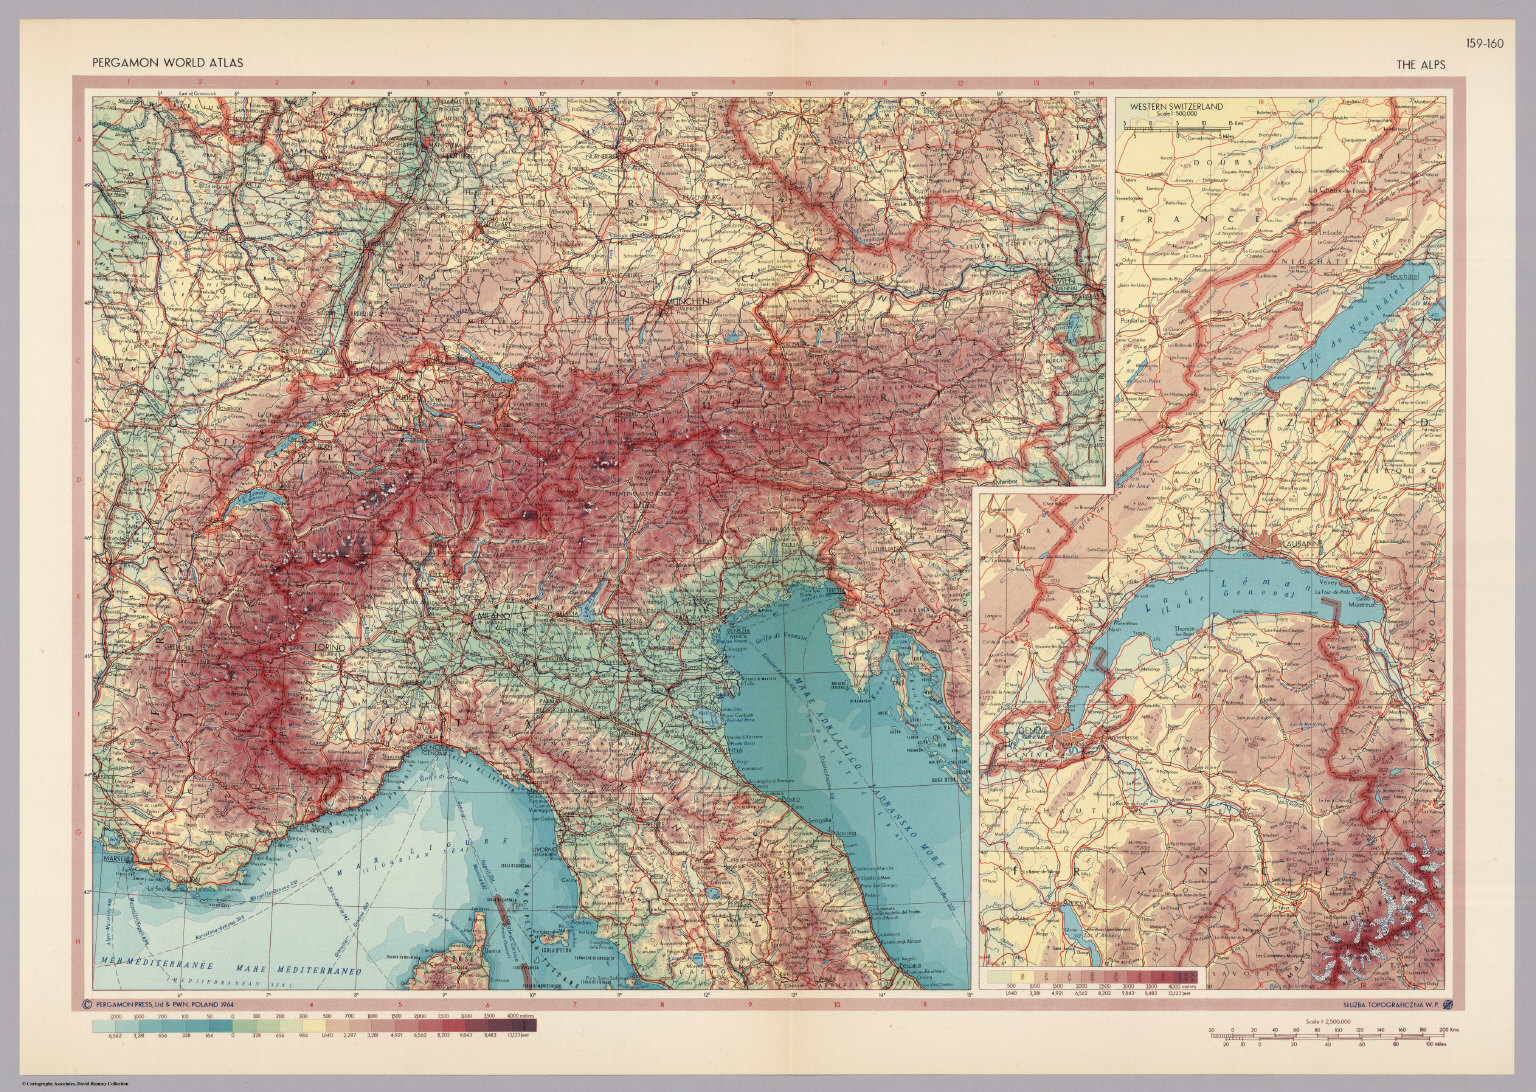 Alps. Pergamon World Atlas. - David Rumsey Historical Map Collection